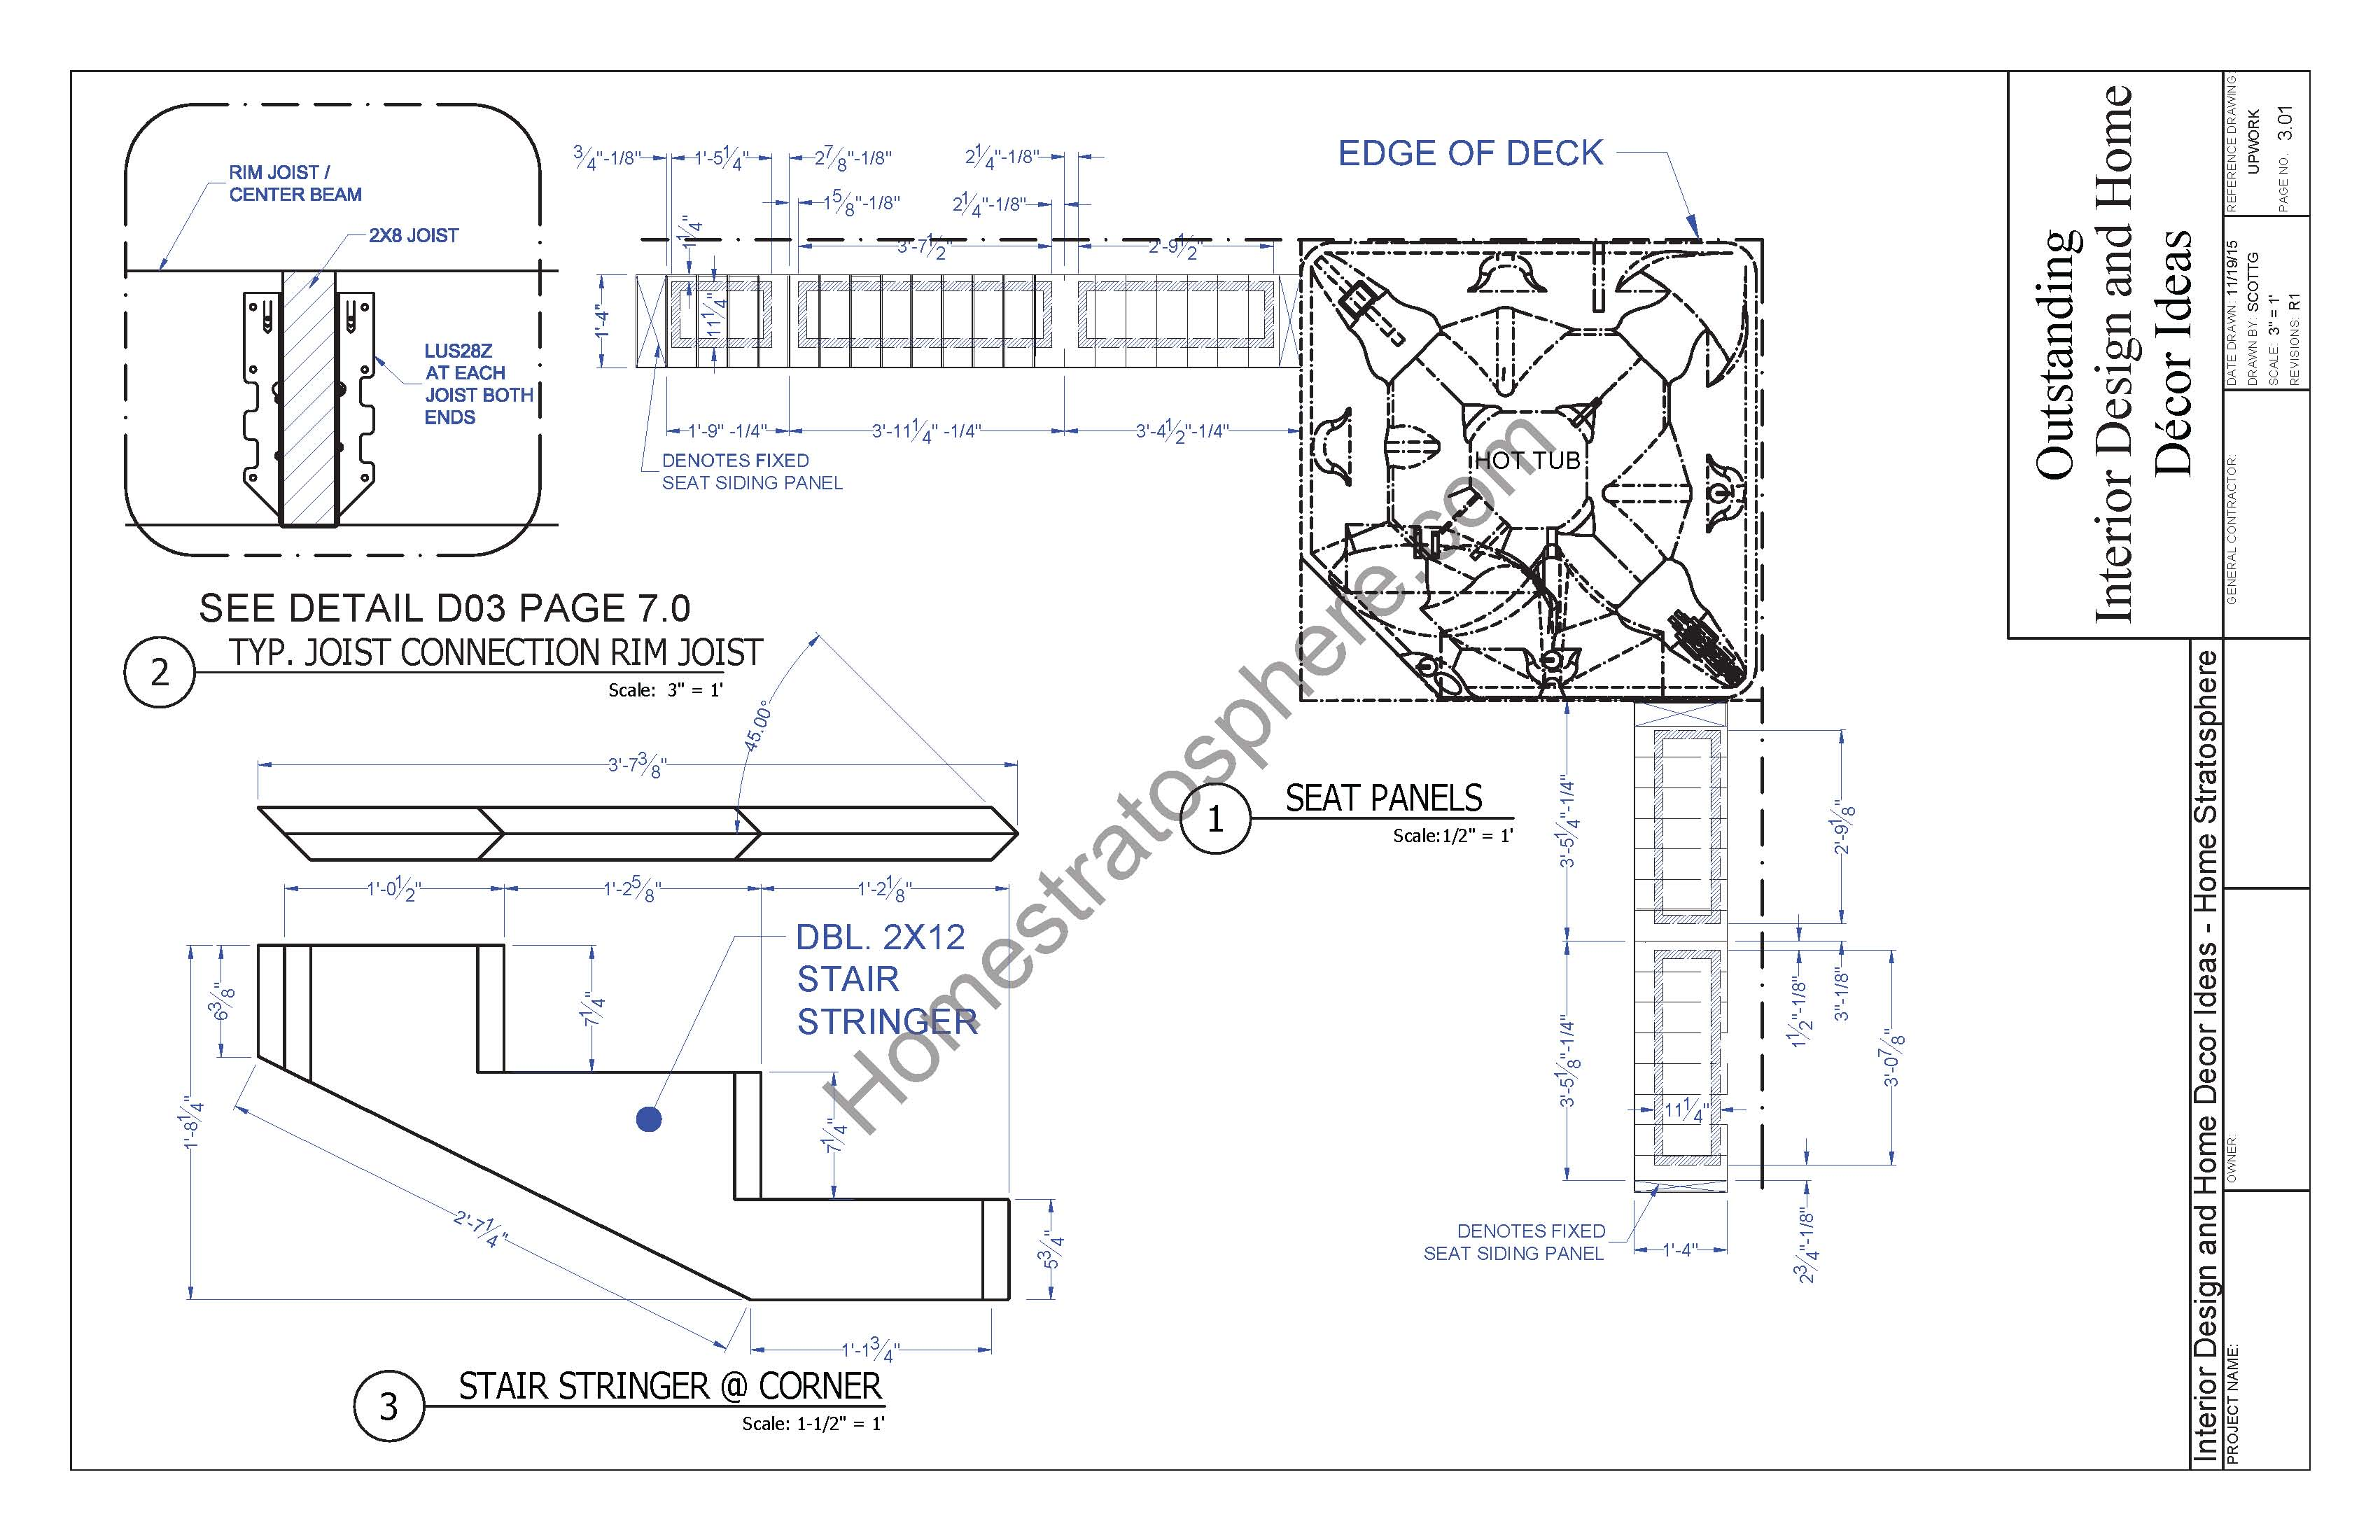 Hot tub and stairs plans (part of deck plans)